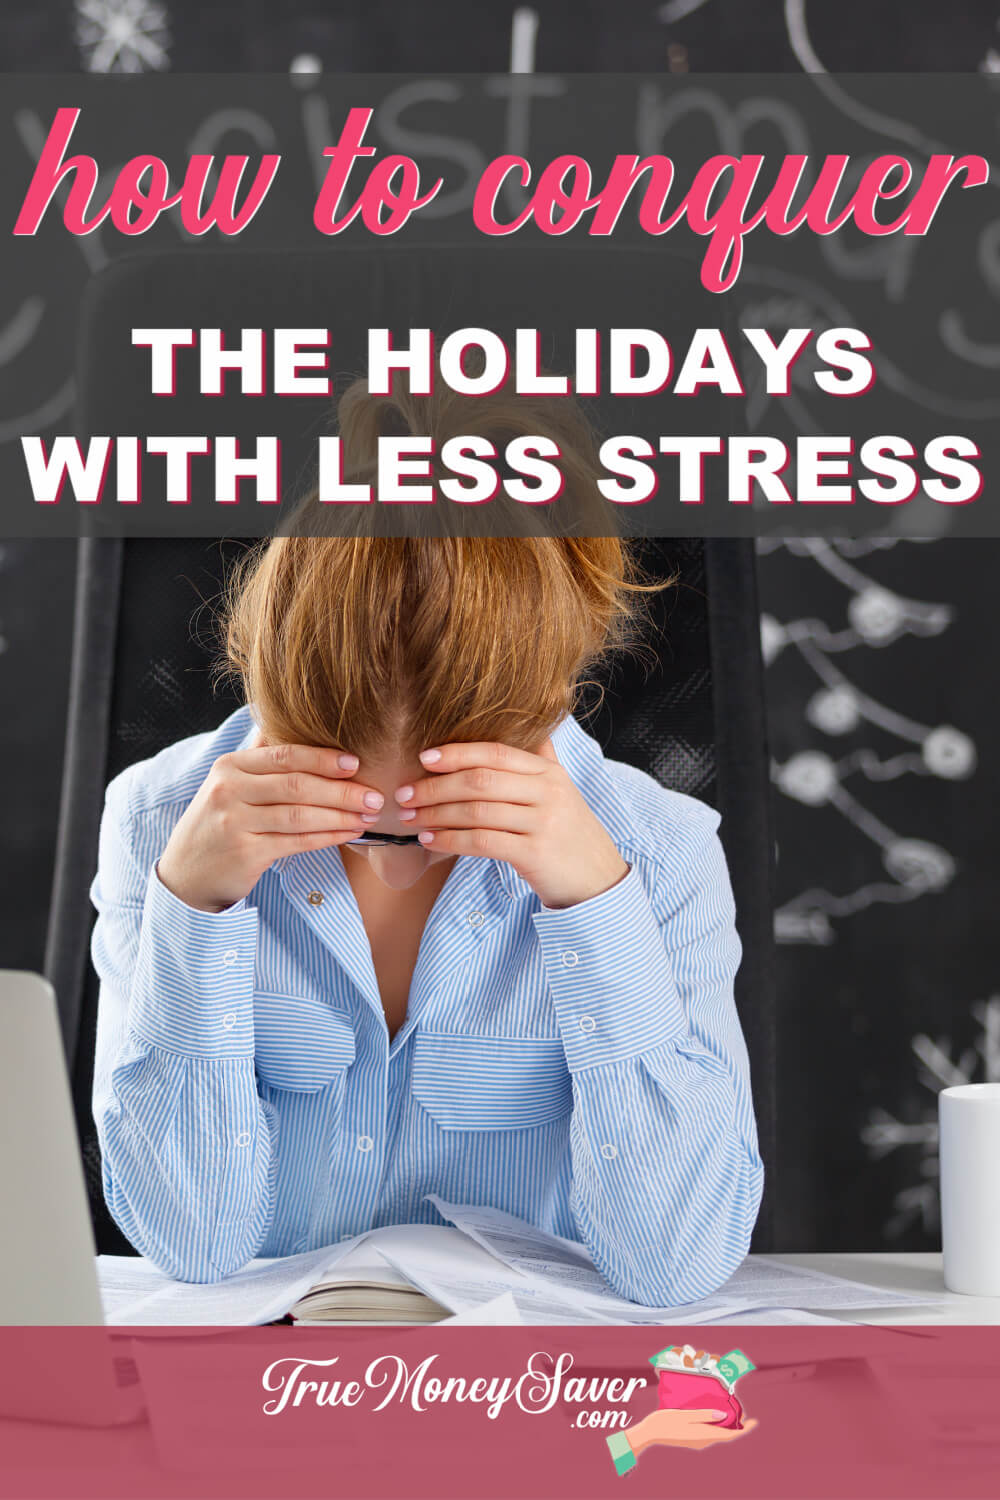 Tips For Holiday Stress - How To Easily Conquer The Holidays